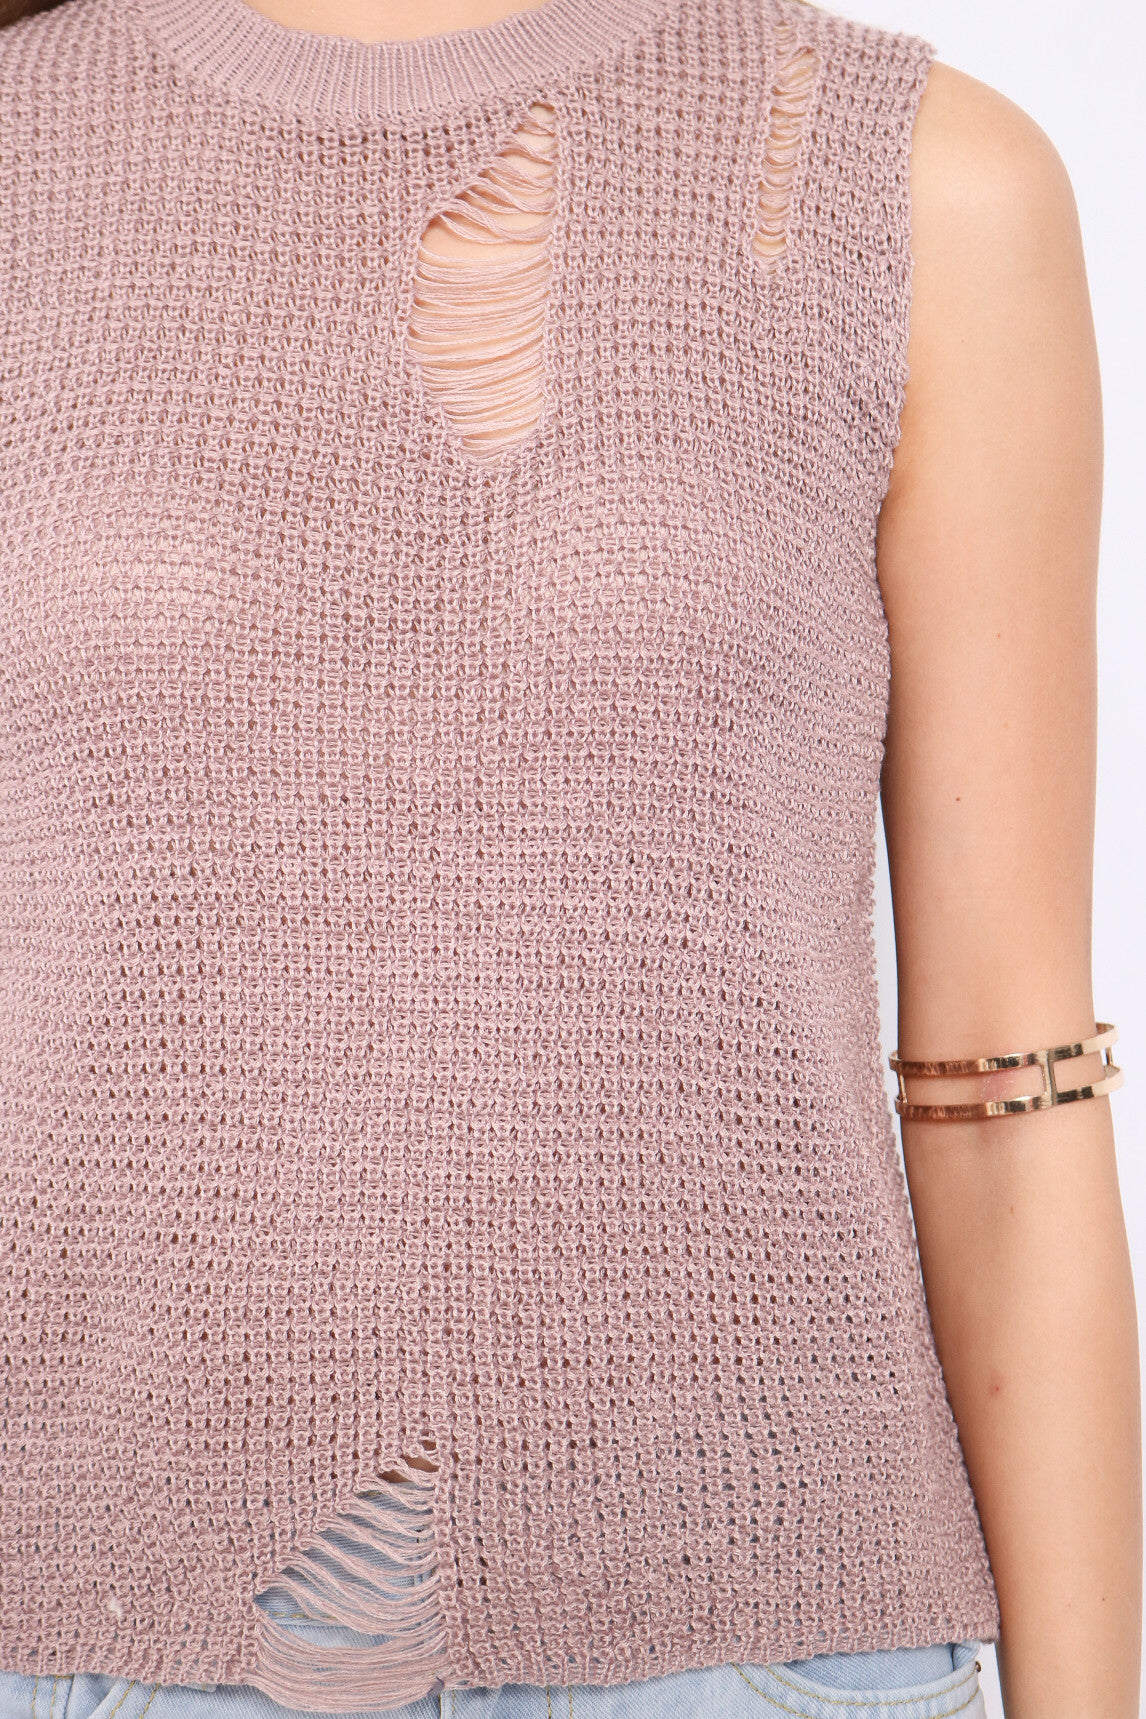 RIPPED KNIT TOP IN PURPLE